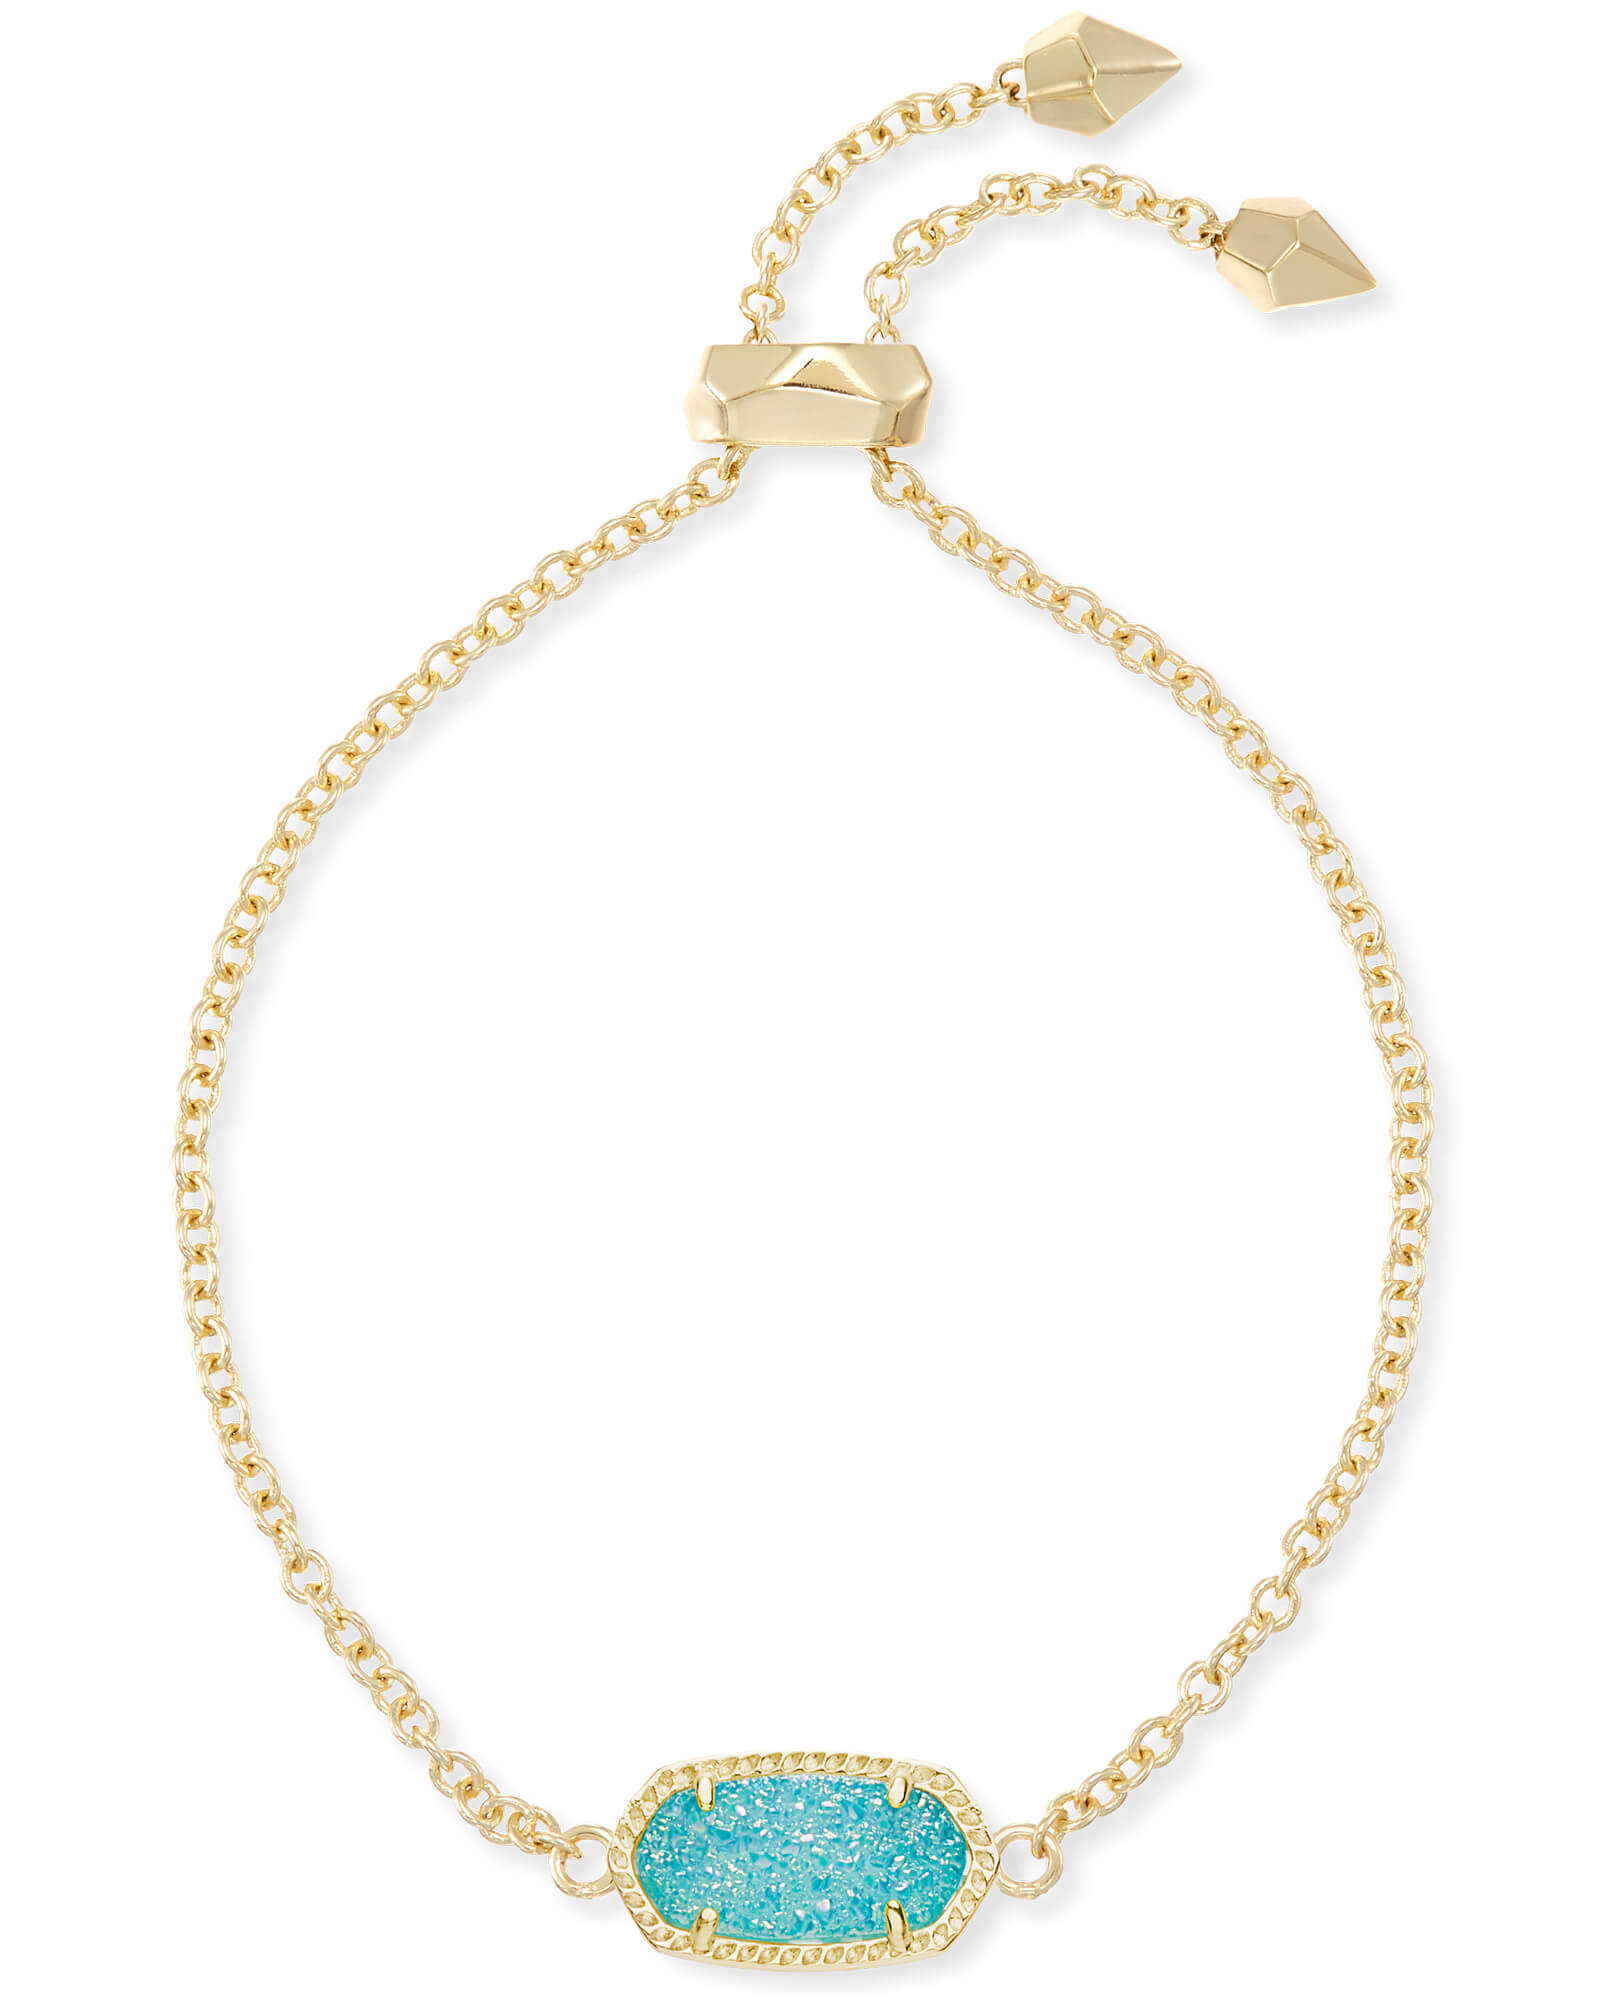 Elaina Gold Adjustable Chain Bracelet in Teal Drusy